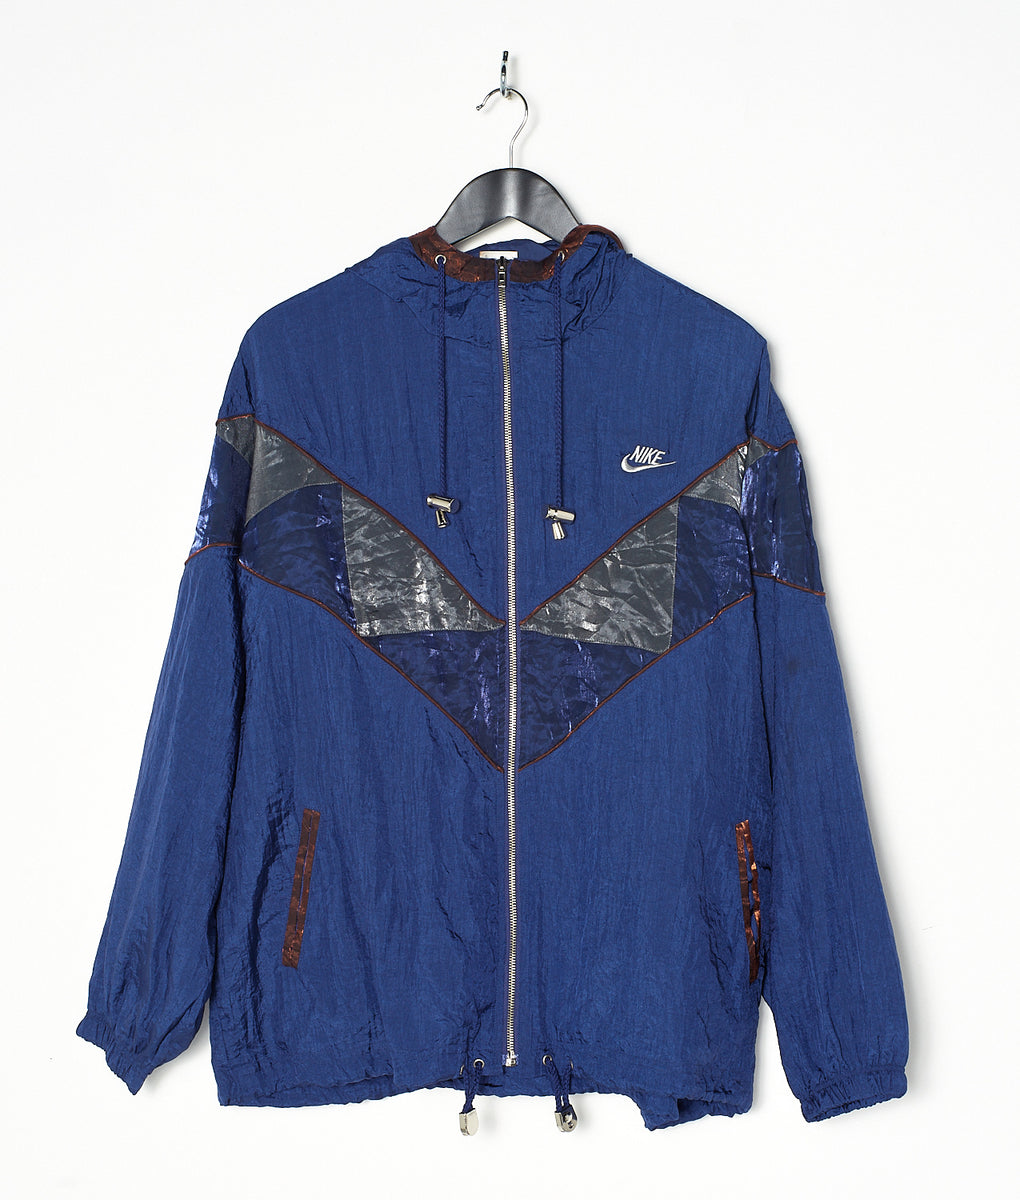 NIKE WIZARD SPORTS JACKET (L)